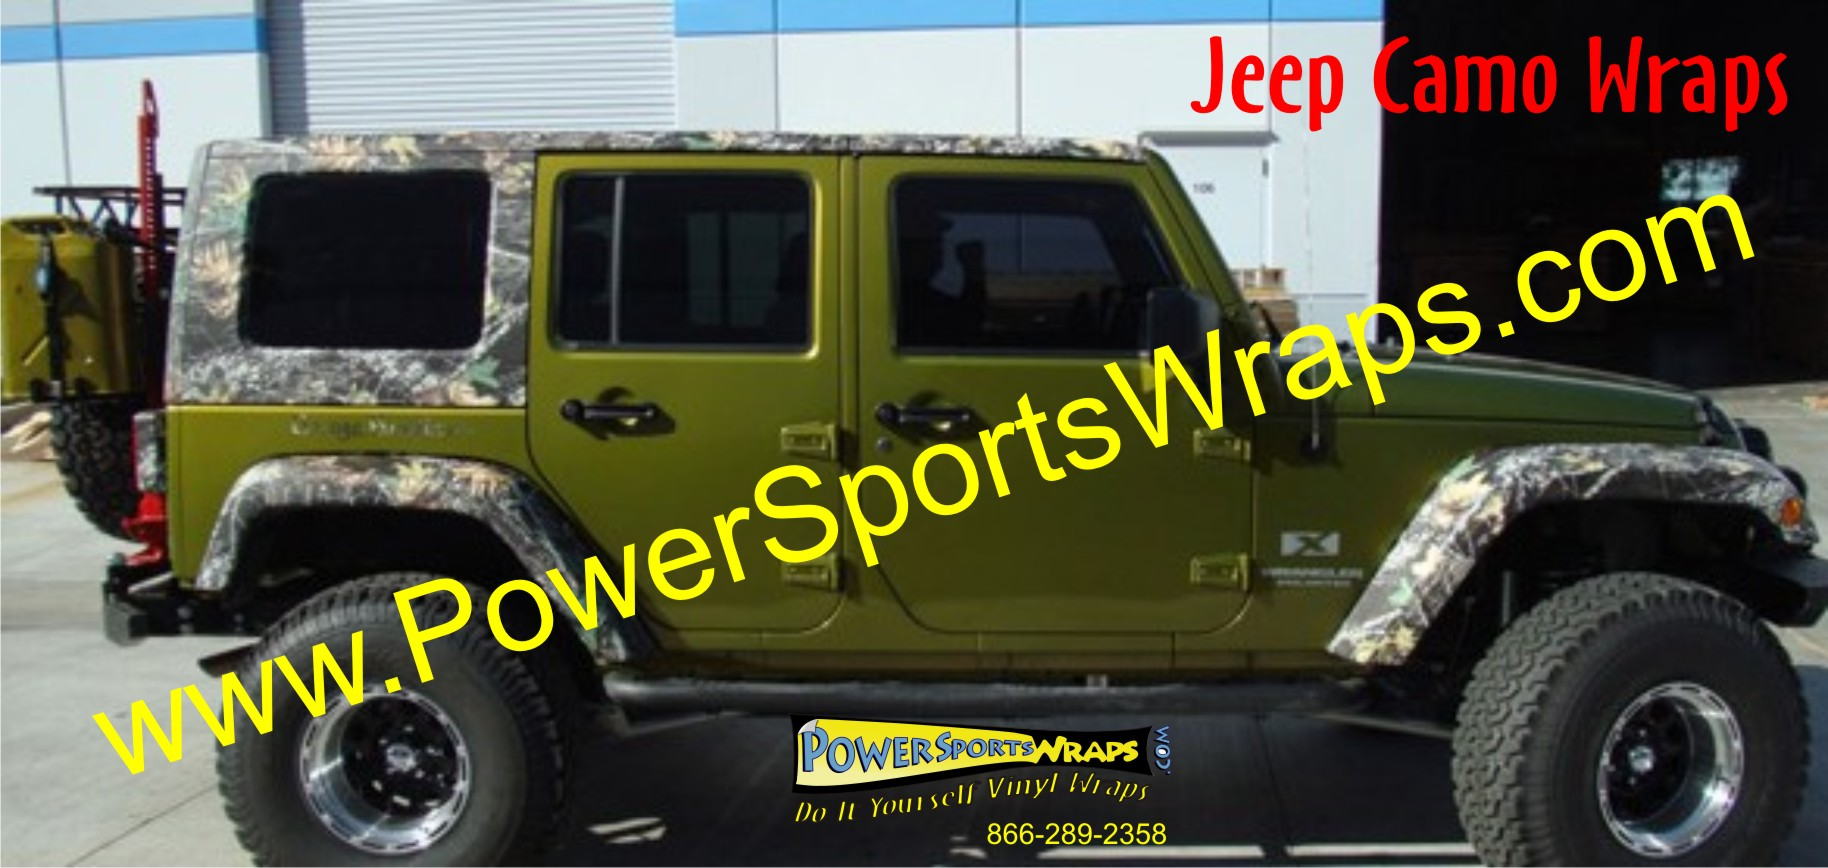 Jeep Camo available at Power Sports Wraps